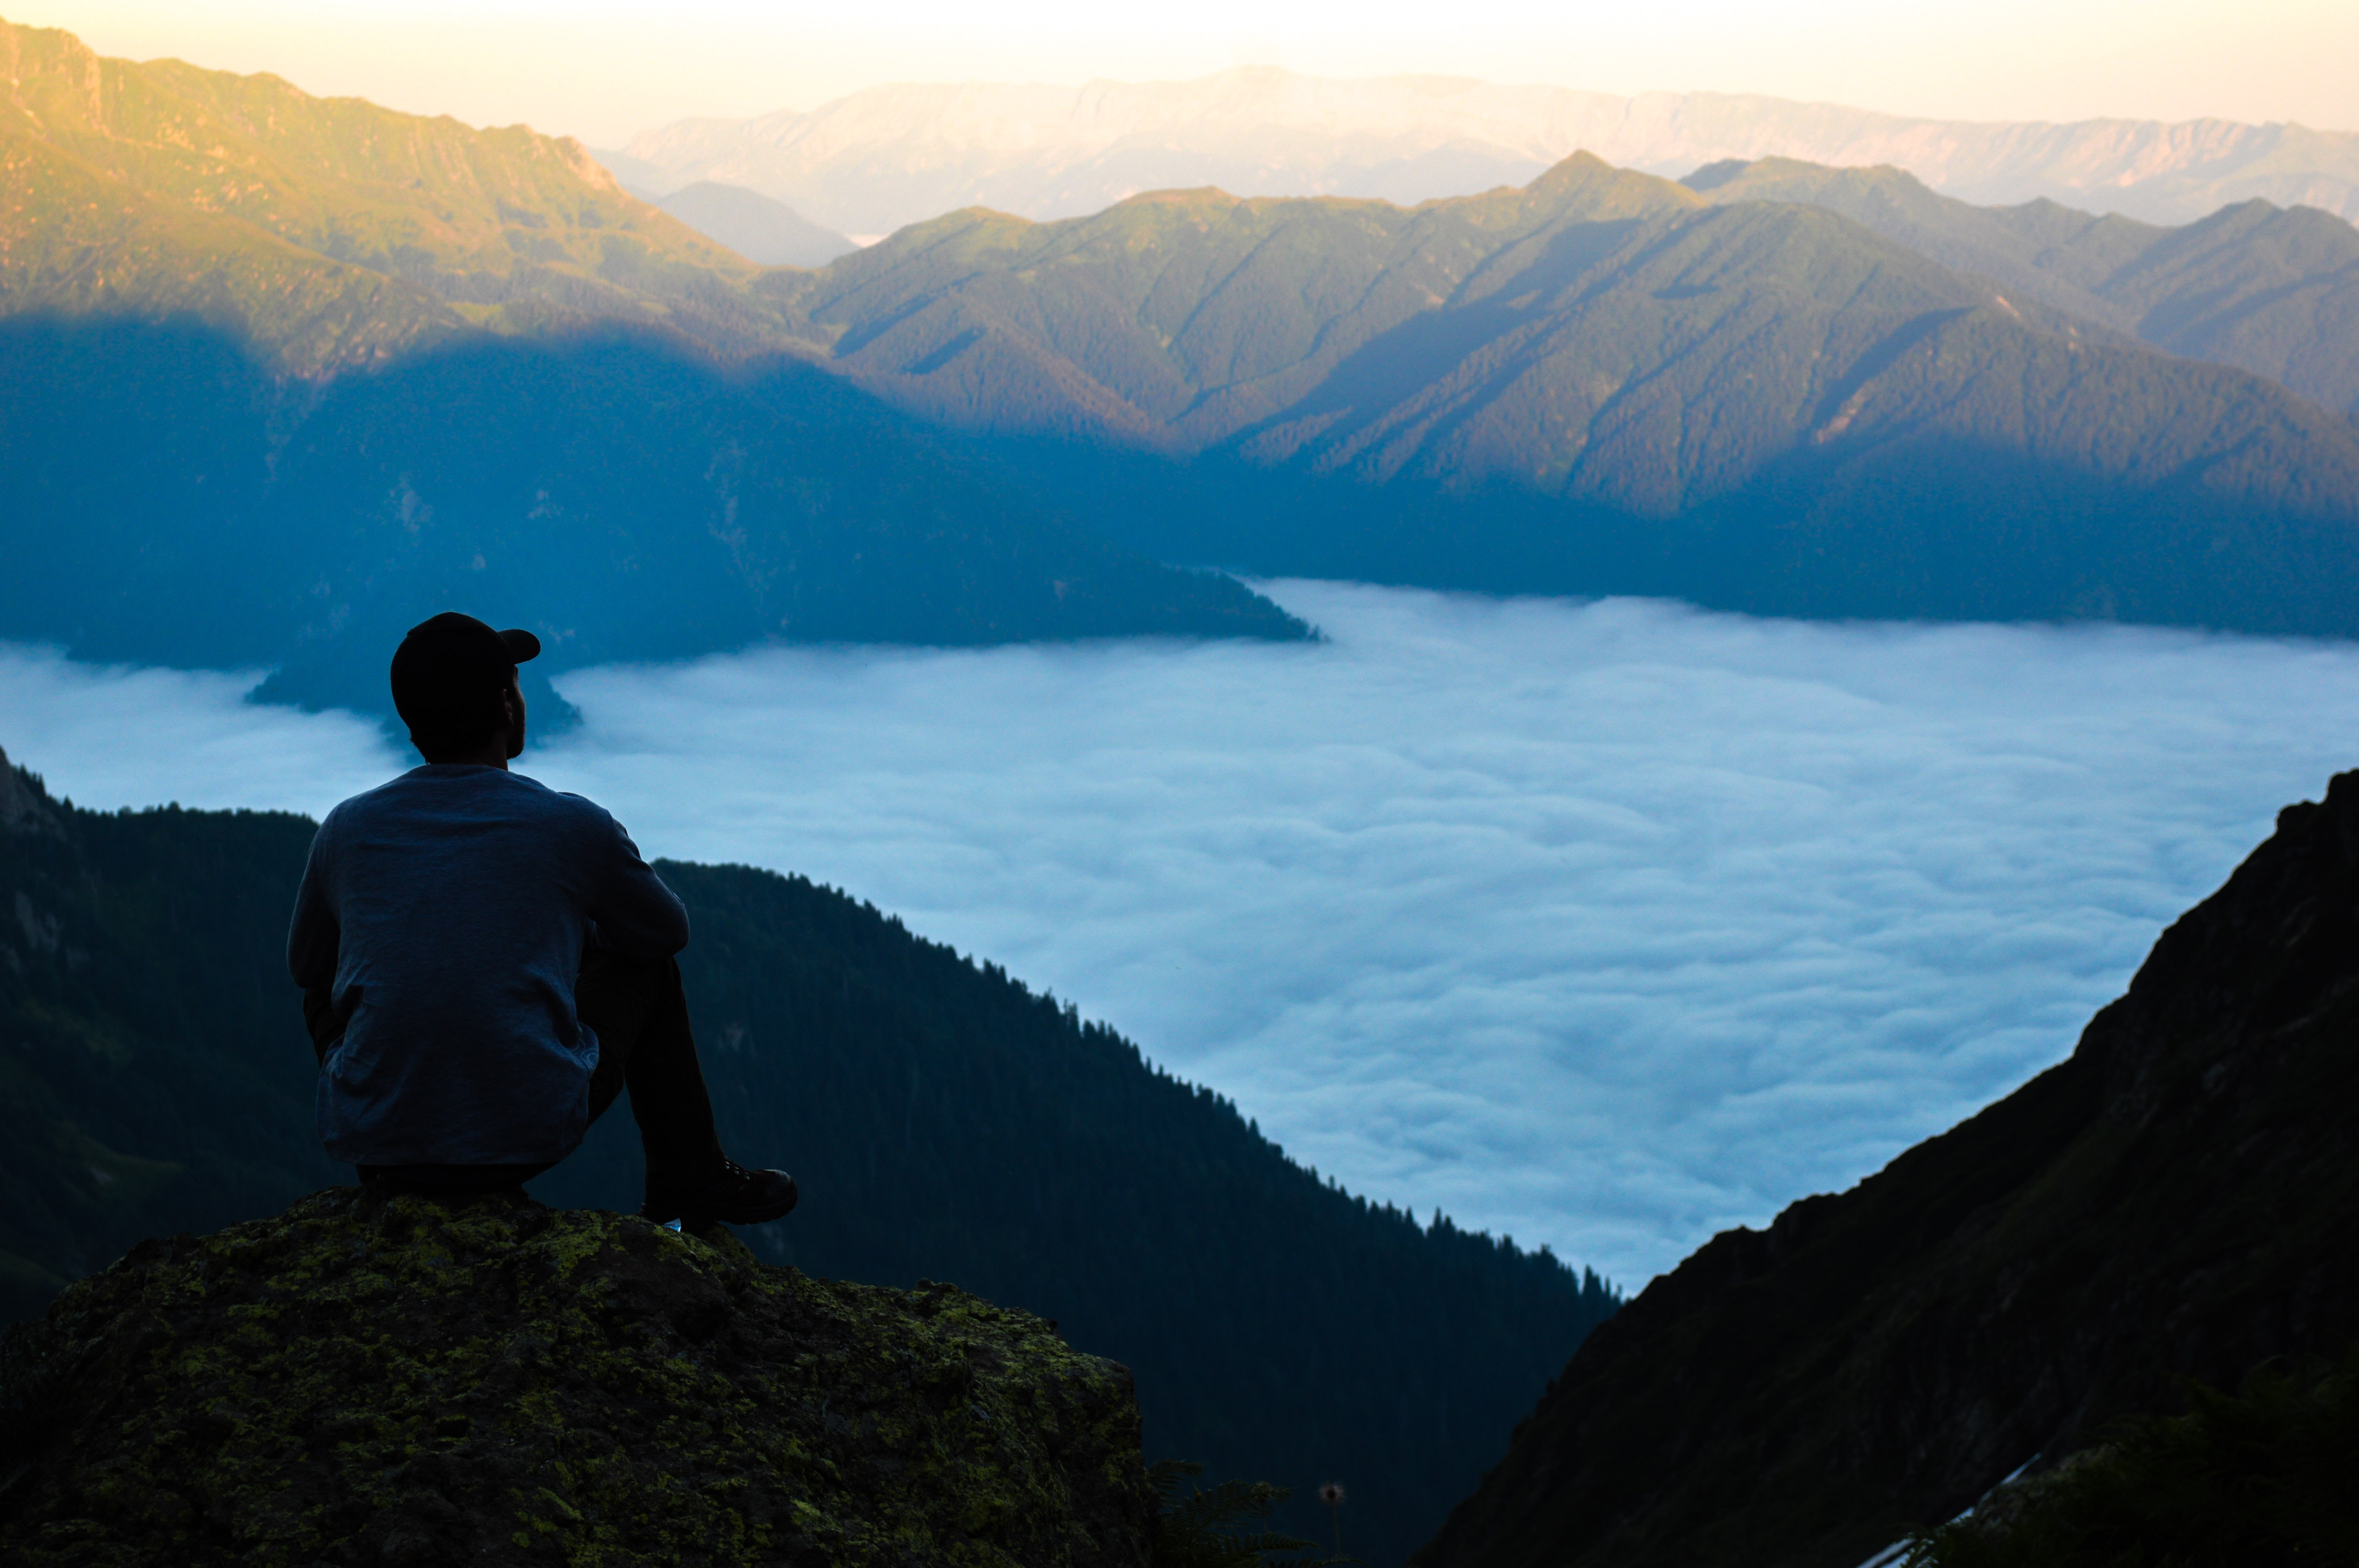 man standing at edge of cliff overlooking lake